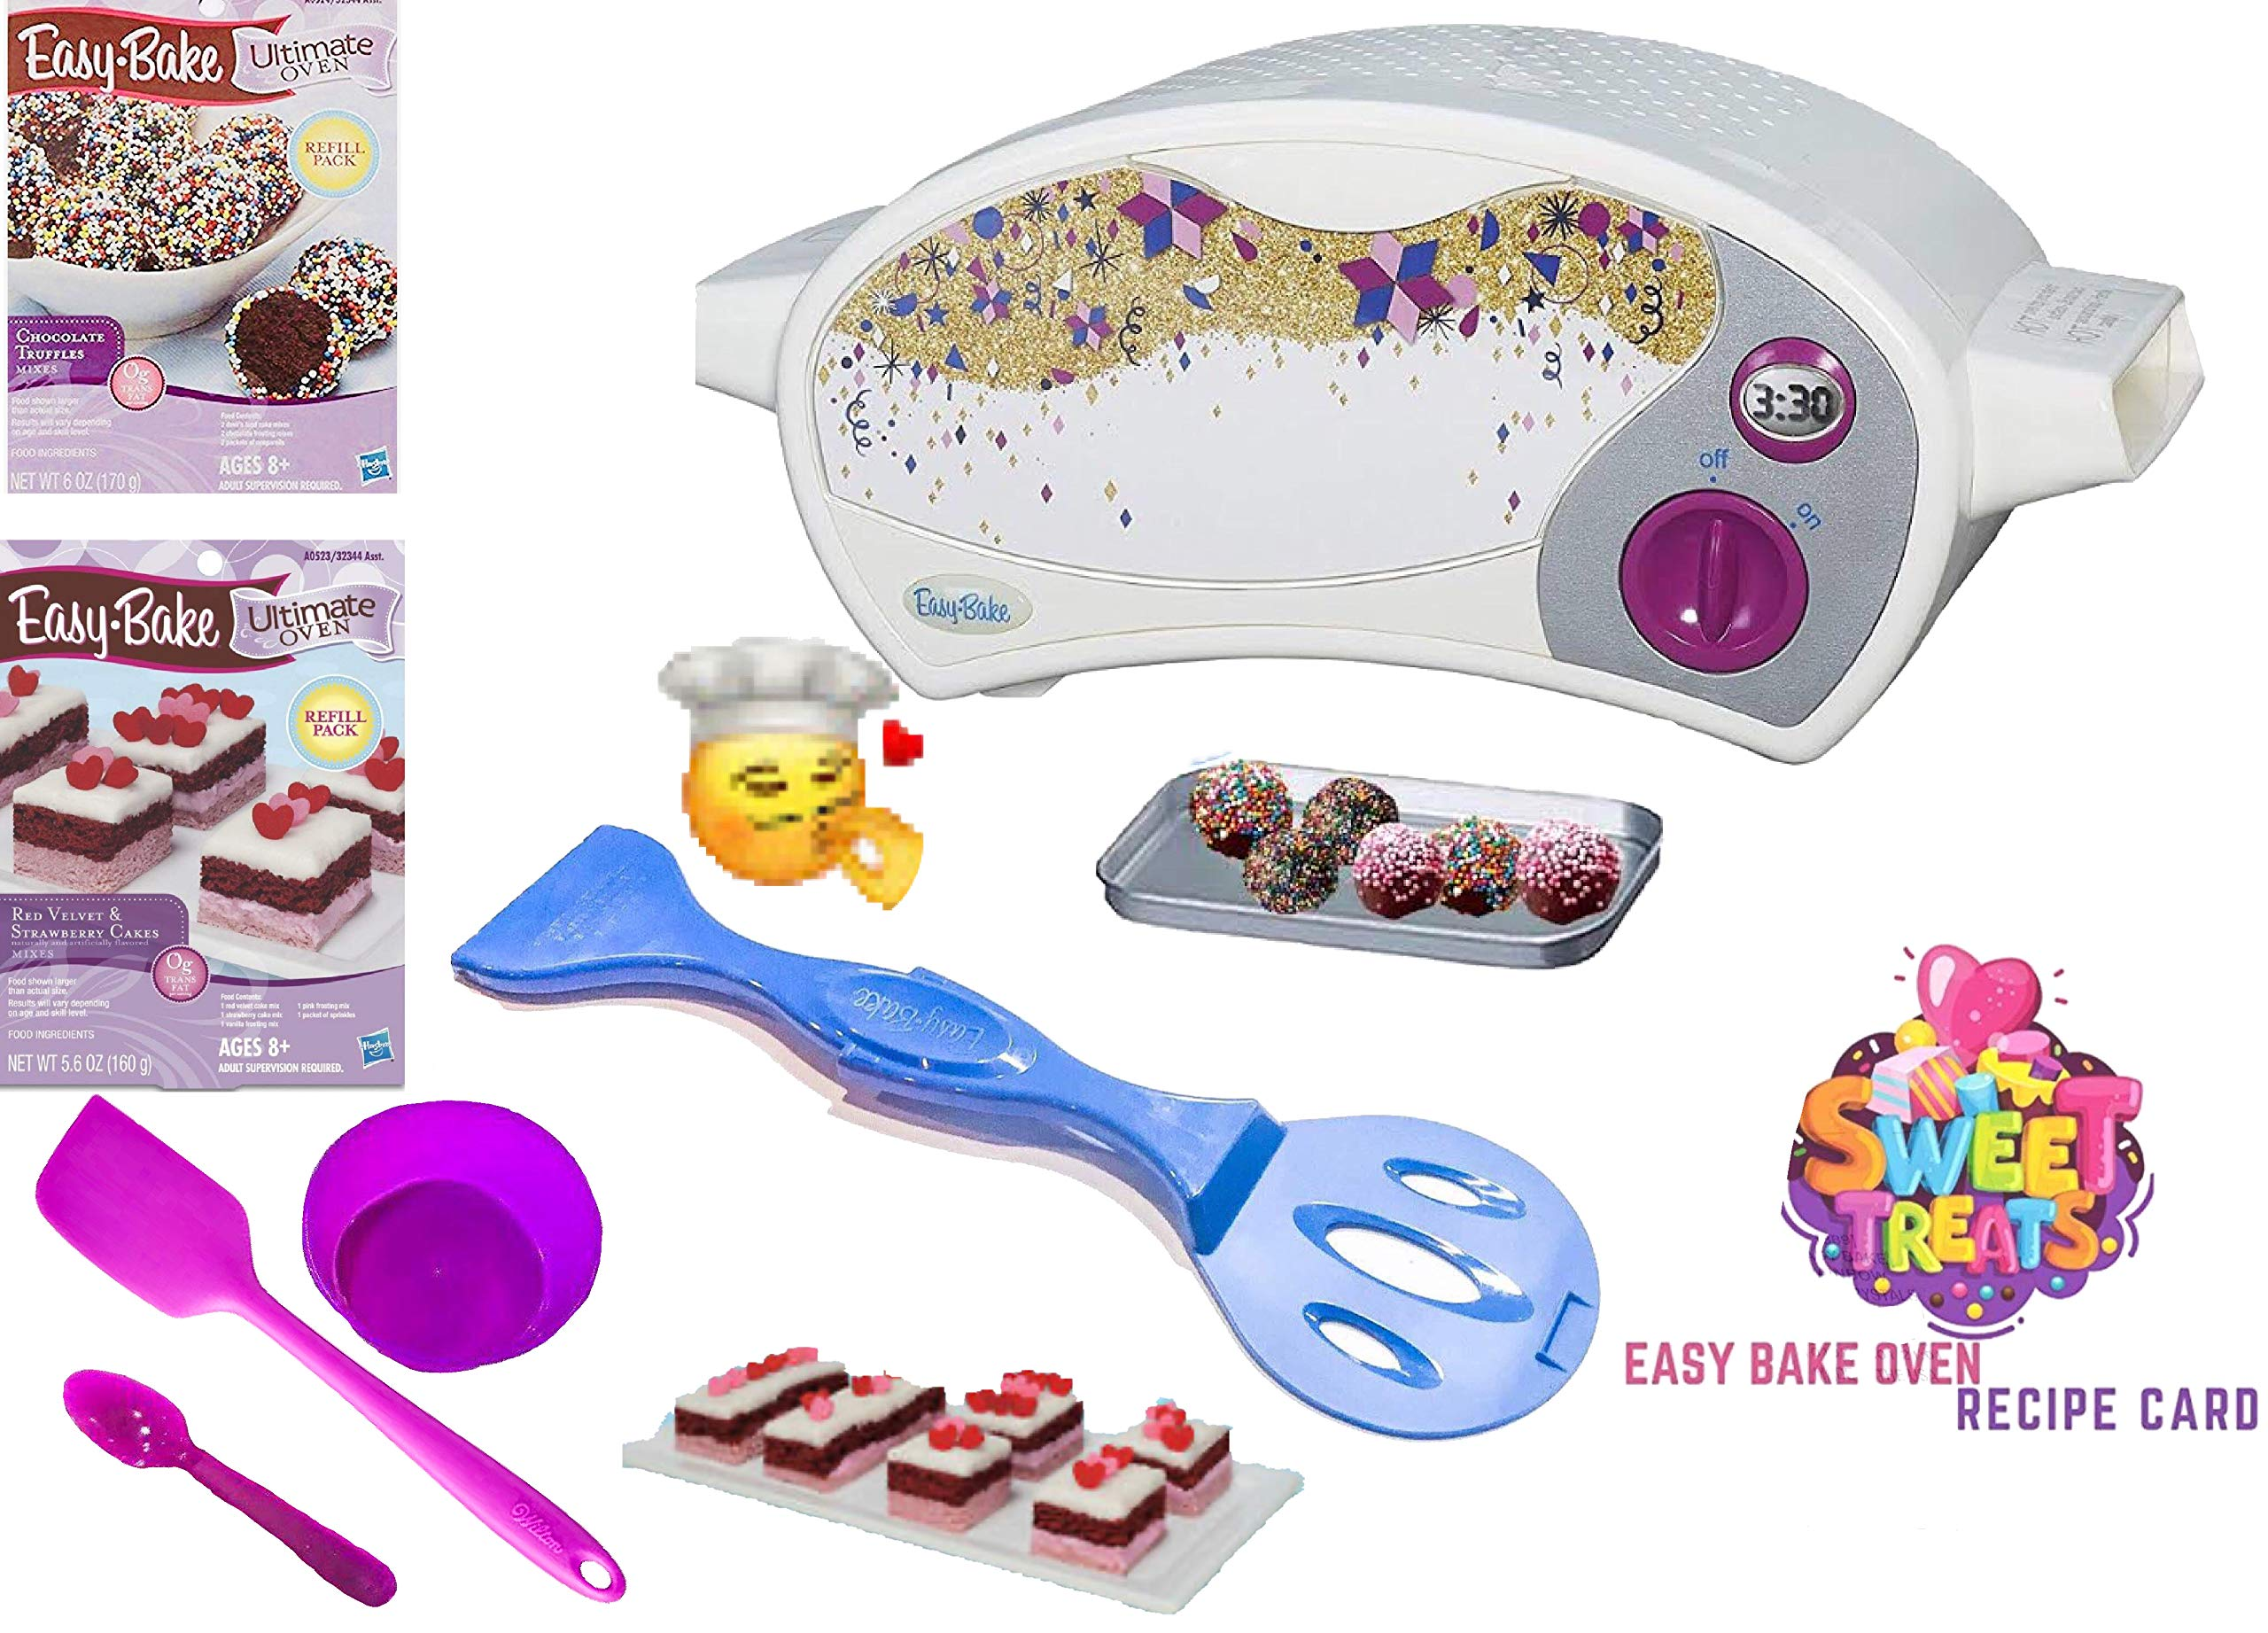 Easy Bake Ultimate Oven Baking Star Edition + 2 Oven Refill Mixes + 2 Sweet Treats Tasty Oven Recipes + Mixing Bowl, Spoon AND EXTRA BAKING ACCESSORIES (7 Total Items) (purple) by Easy Bake